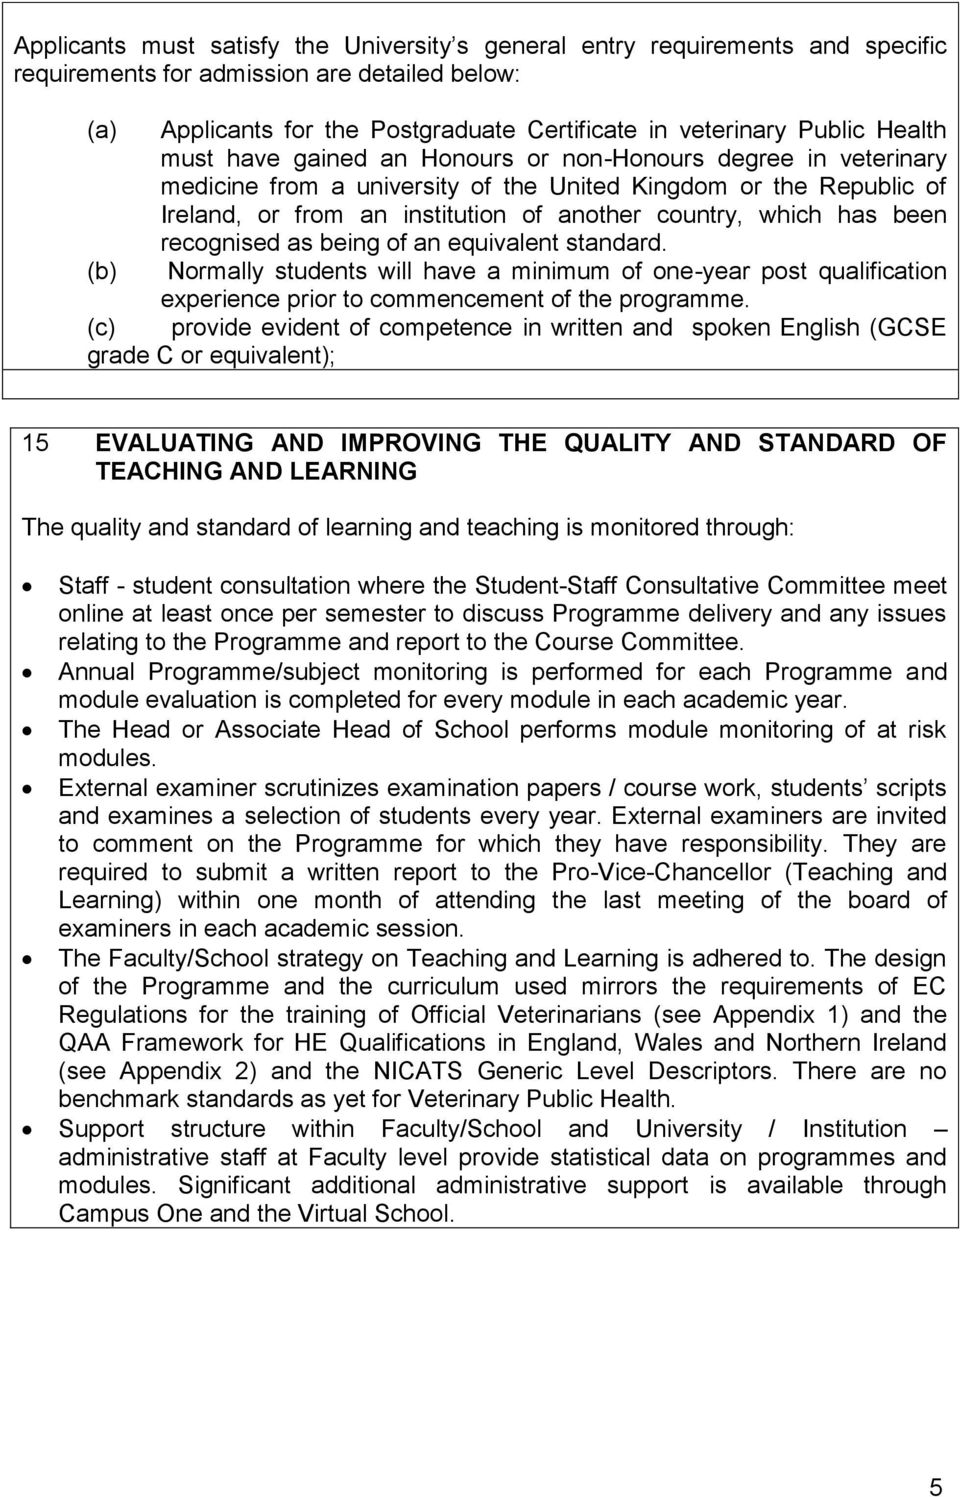 has been recognised as being of an equivalent standard. (b) Normally students will have a minimum of one-year post qualification experience prior to commencement of the programme.